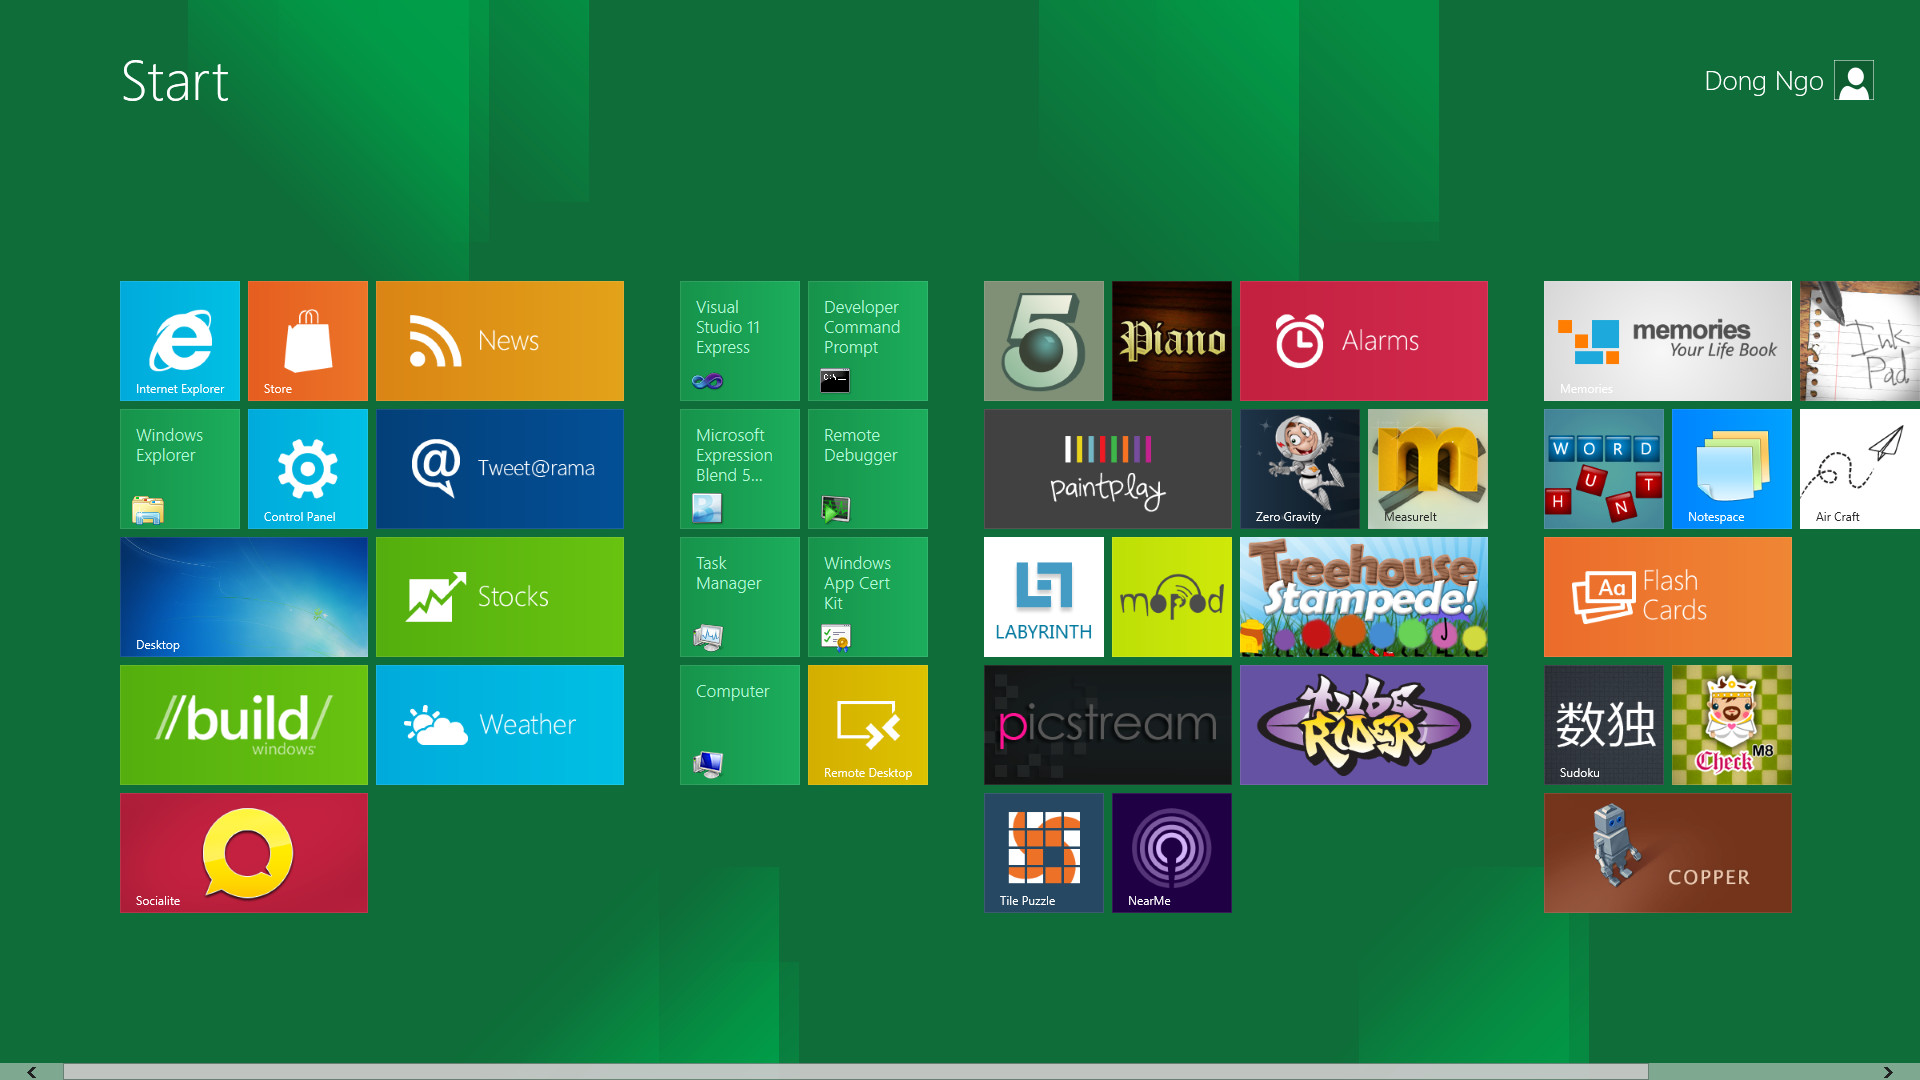 In Windows 8, the Start menu is no longer what it used to be. Dong Ngo/CNET